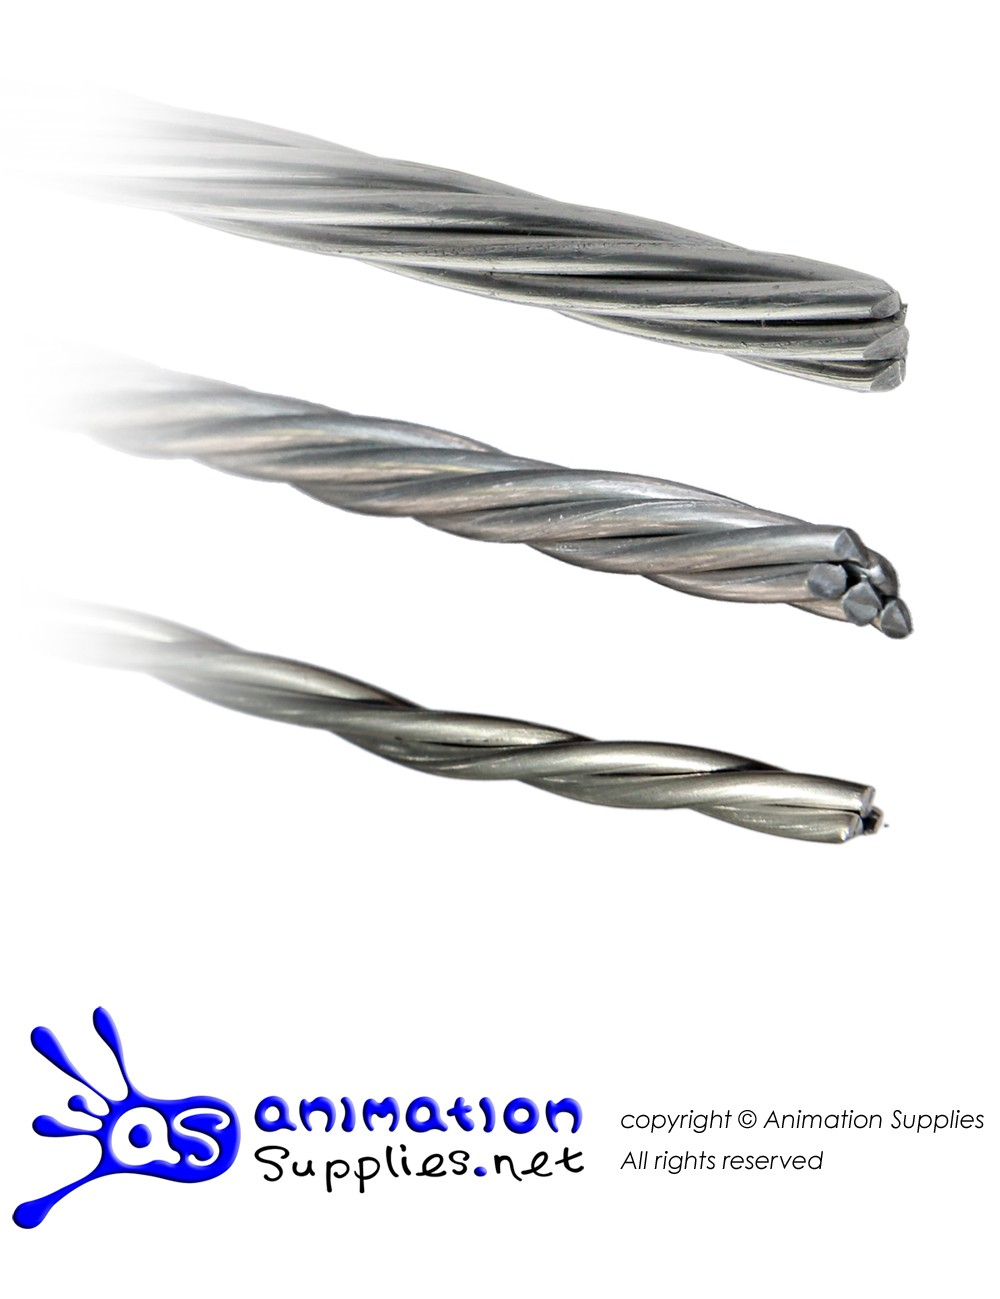 AS Twisted 2mm Aluminium Wire (3 Strands) - 8 meters